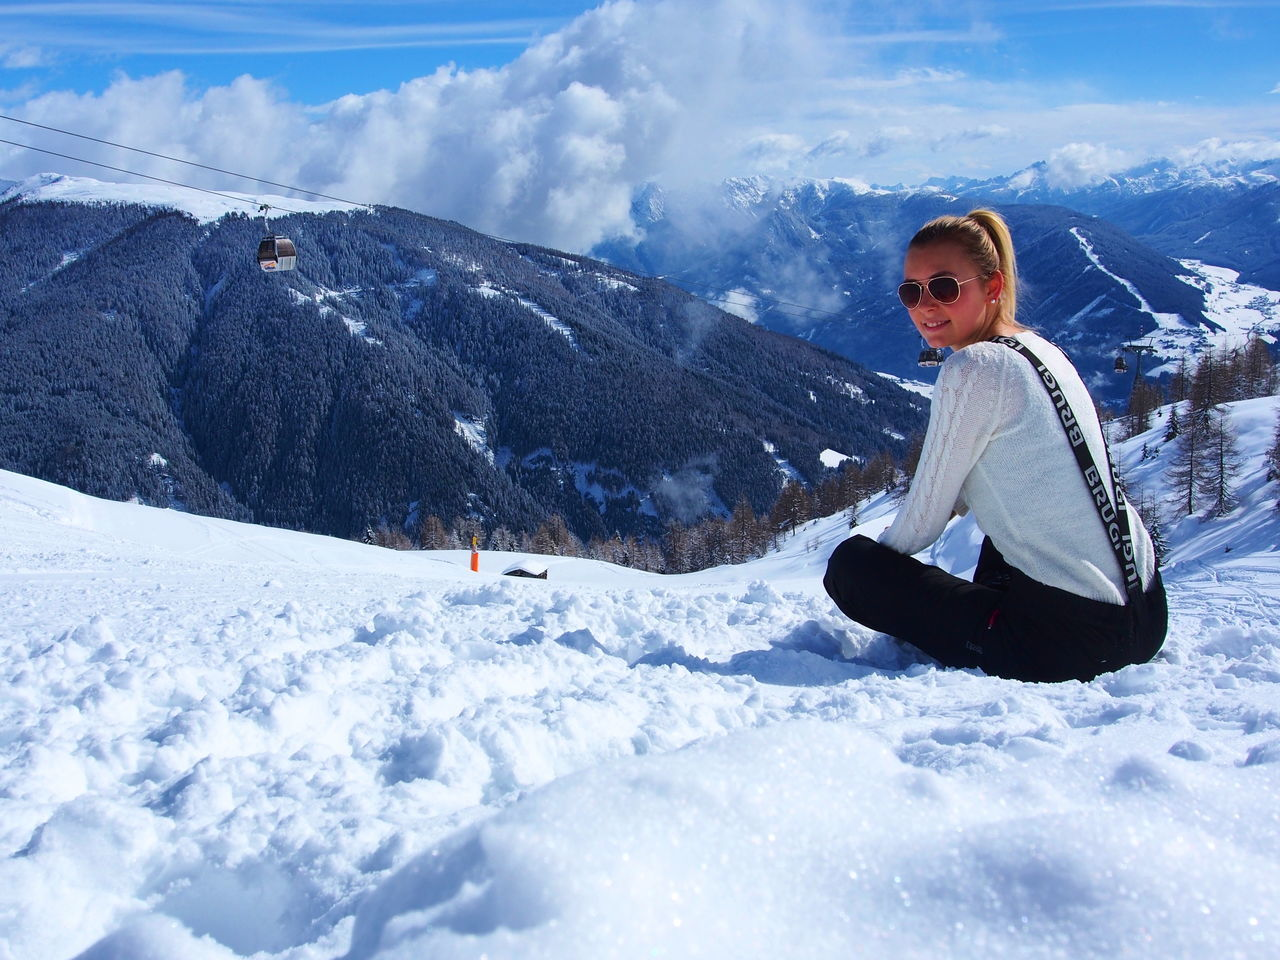 Alps BeautifulWinter Beauty In Nature Blondgirl Cloud - Sky Cold Temperature Dolomites, Italy Epic Girlonthetrip Mountain Nature Outdoors Sitting Sky Snow Snow Covered Snow Day Snowboarding Sportgirl Travelgirl Winter Winter Wonderland WinterChill Winterday Wintertime